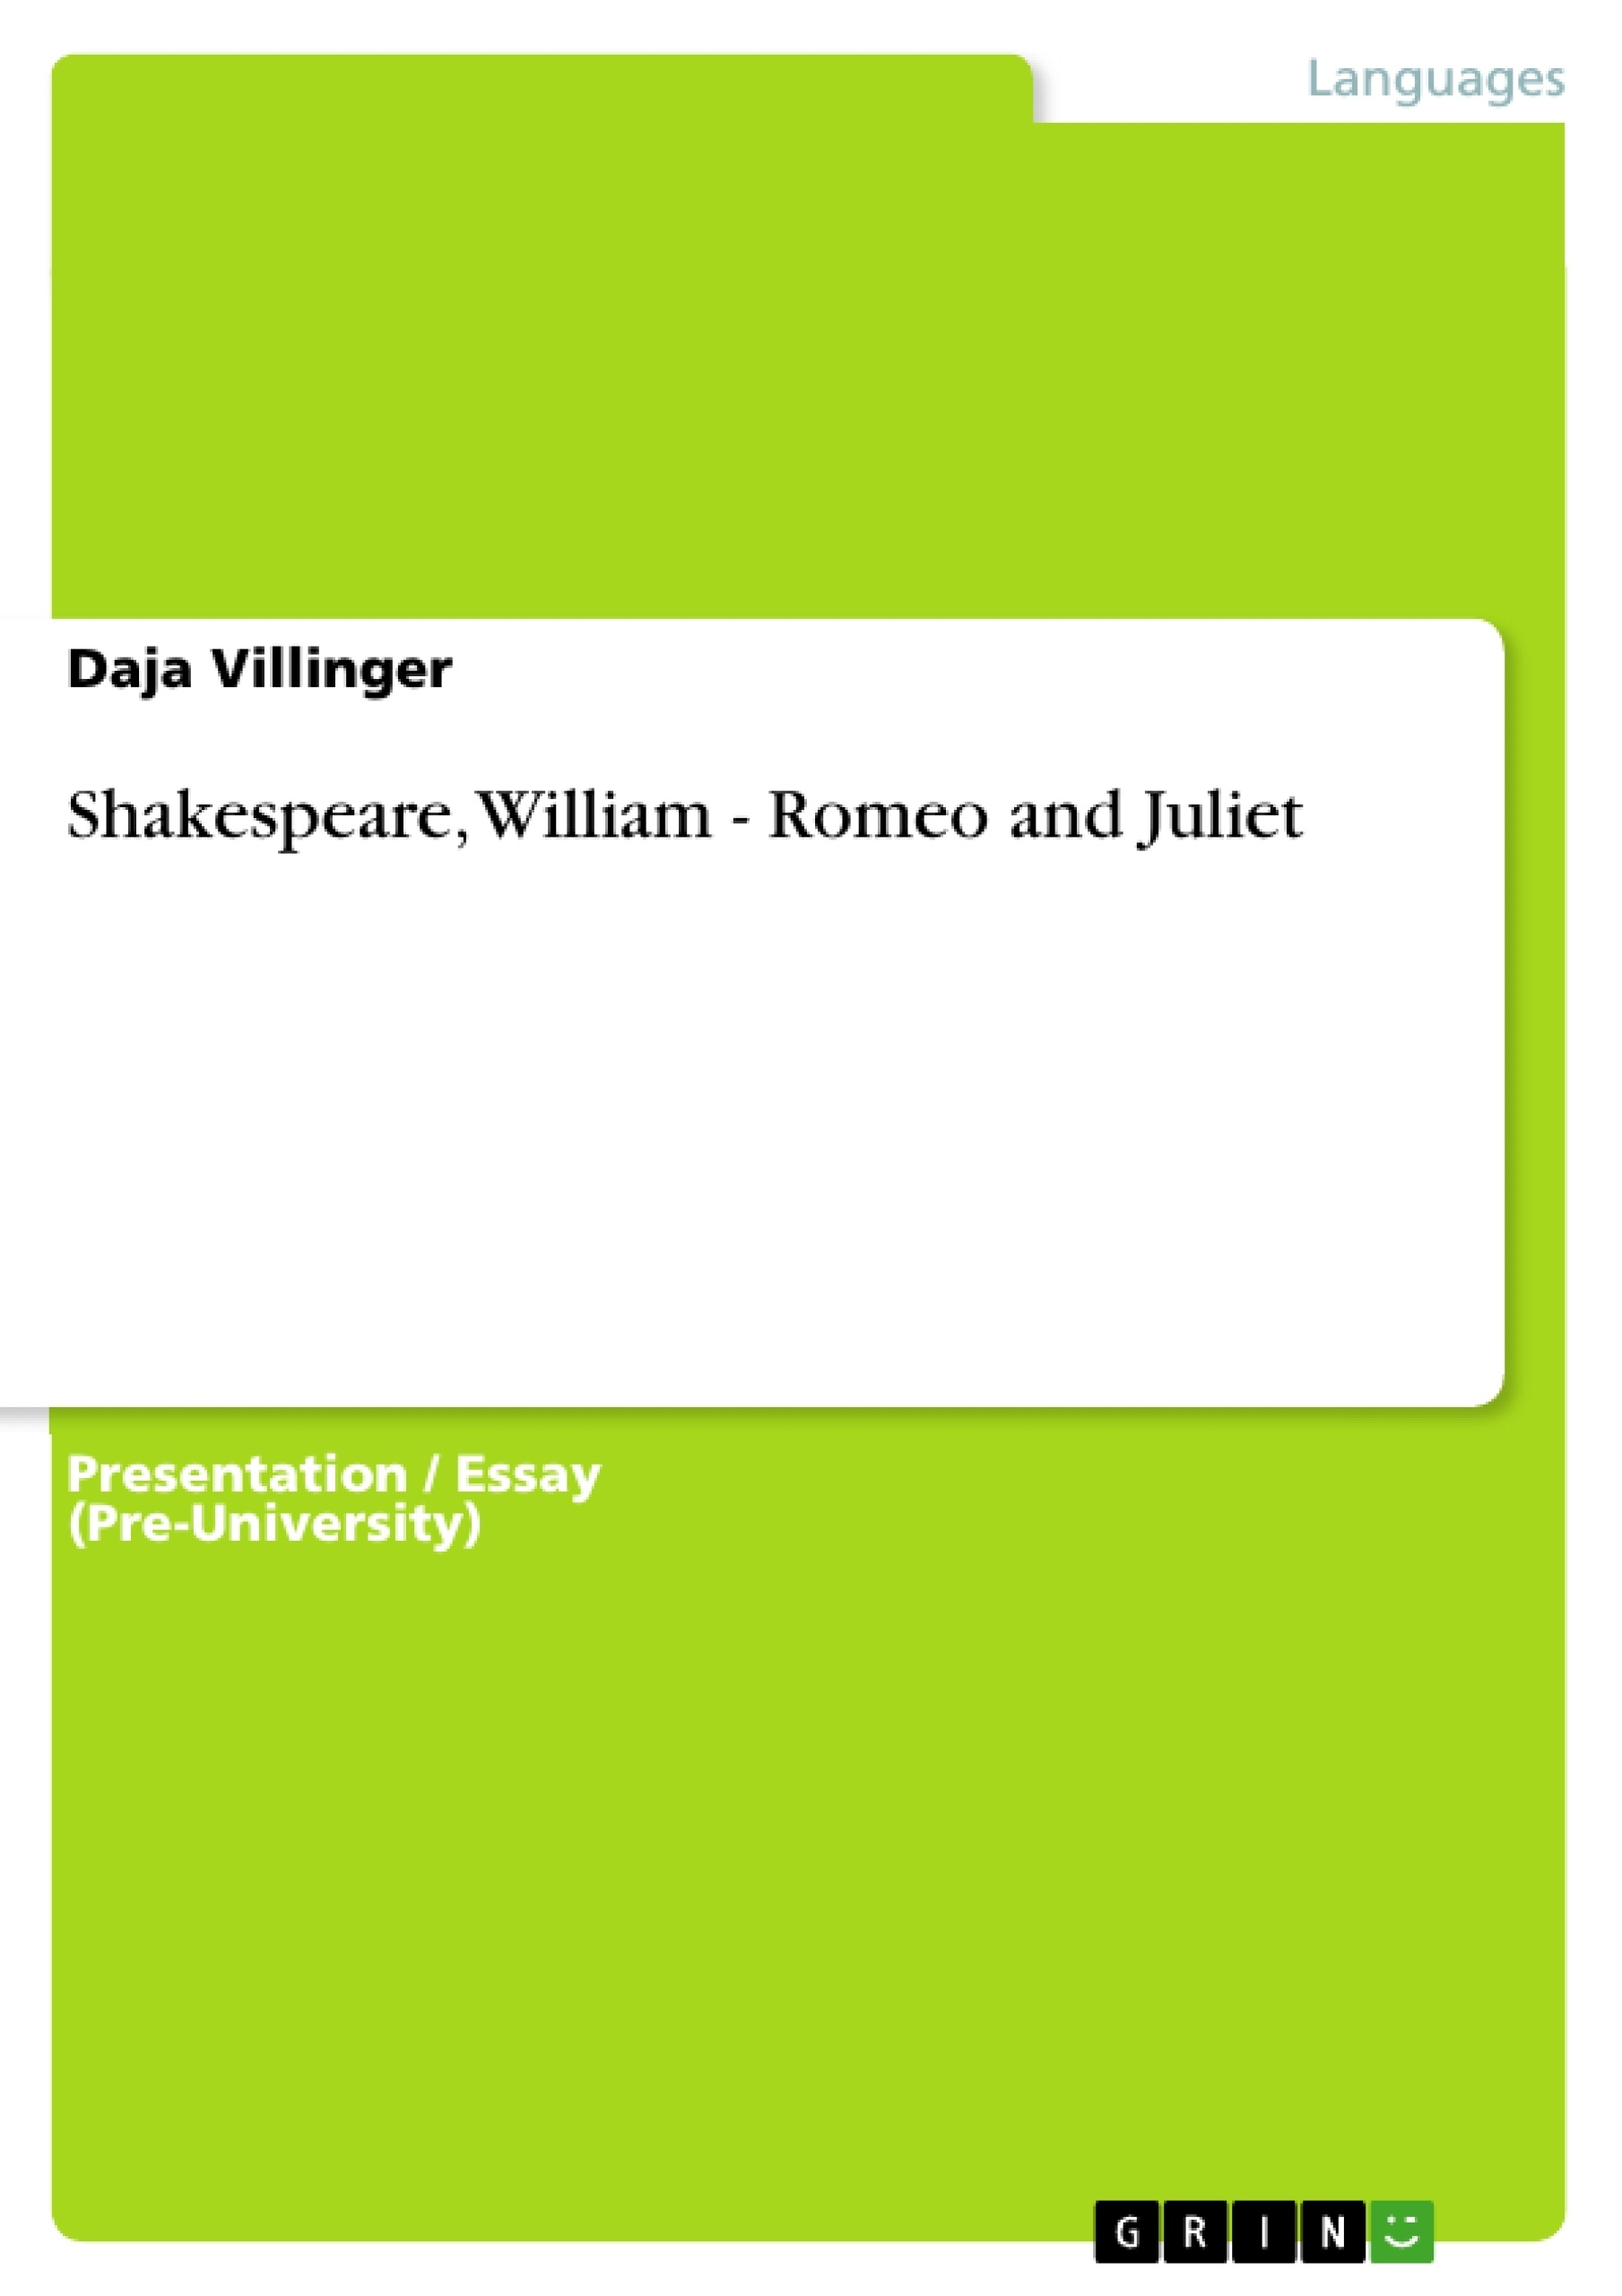 william shakespeare 17 essay Free coursework on essay on william shakespeares life from essayukcom, the uk essays company for essay, dissertation and coursework writing  shakespeare.